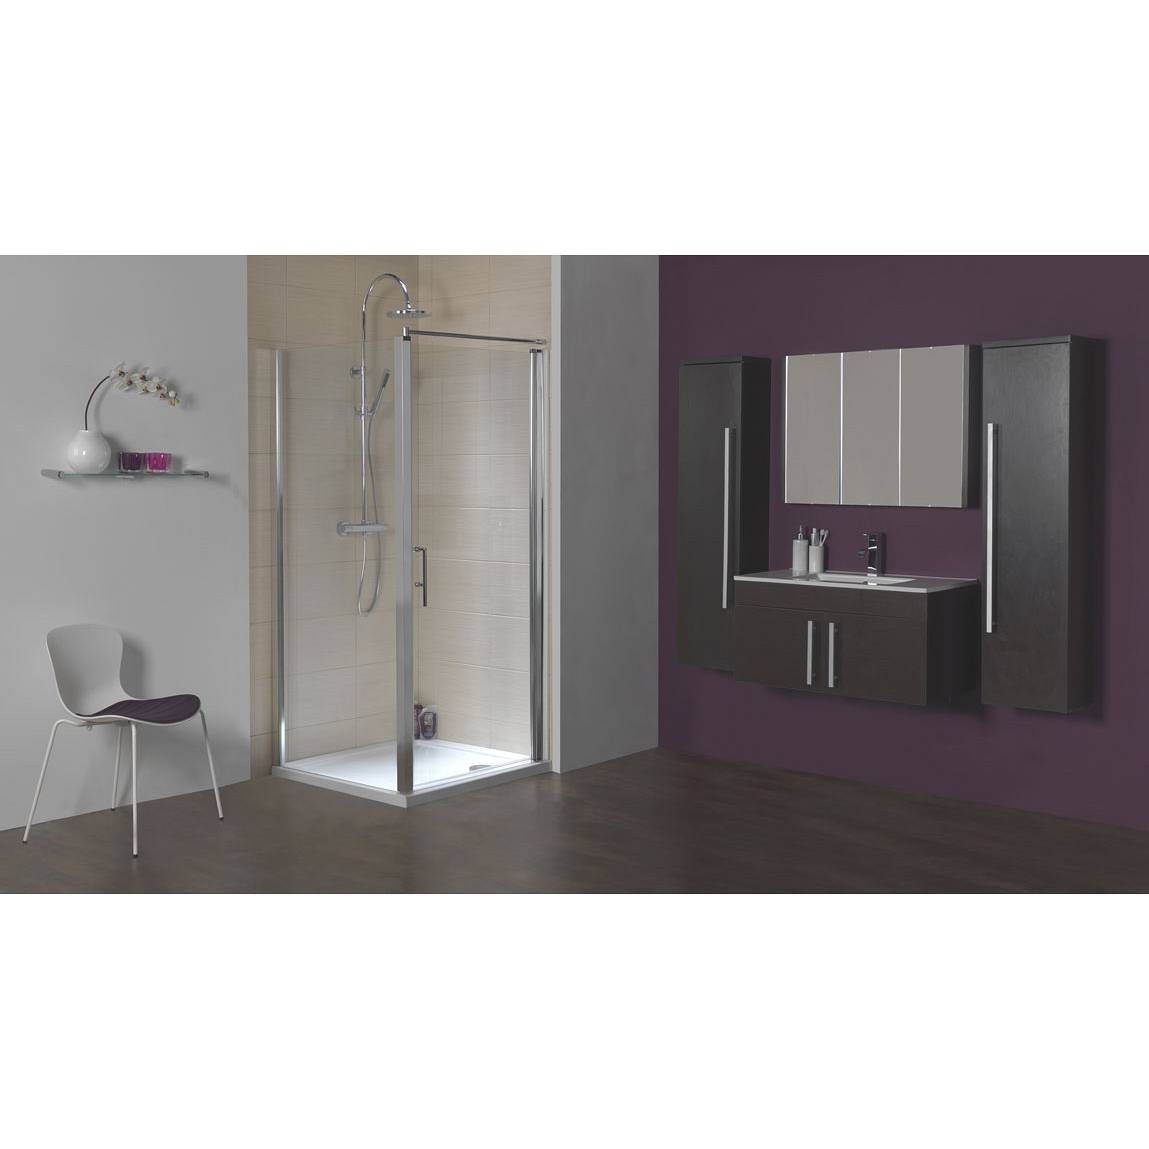 Frameless Hinged Shower Enclosure 760 Now 199 Www Victoriaplumb Com Victoriaplum Com Shower Enclosure Bathroom Suite